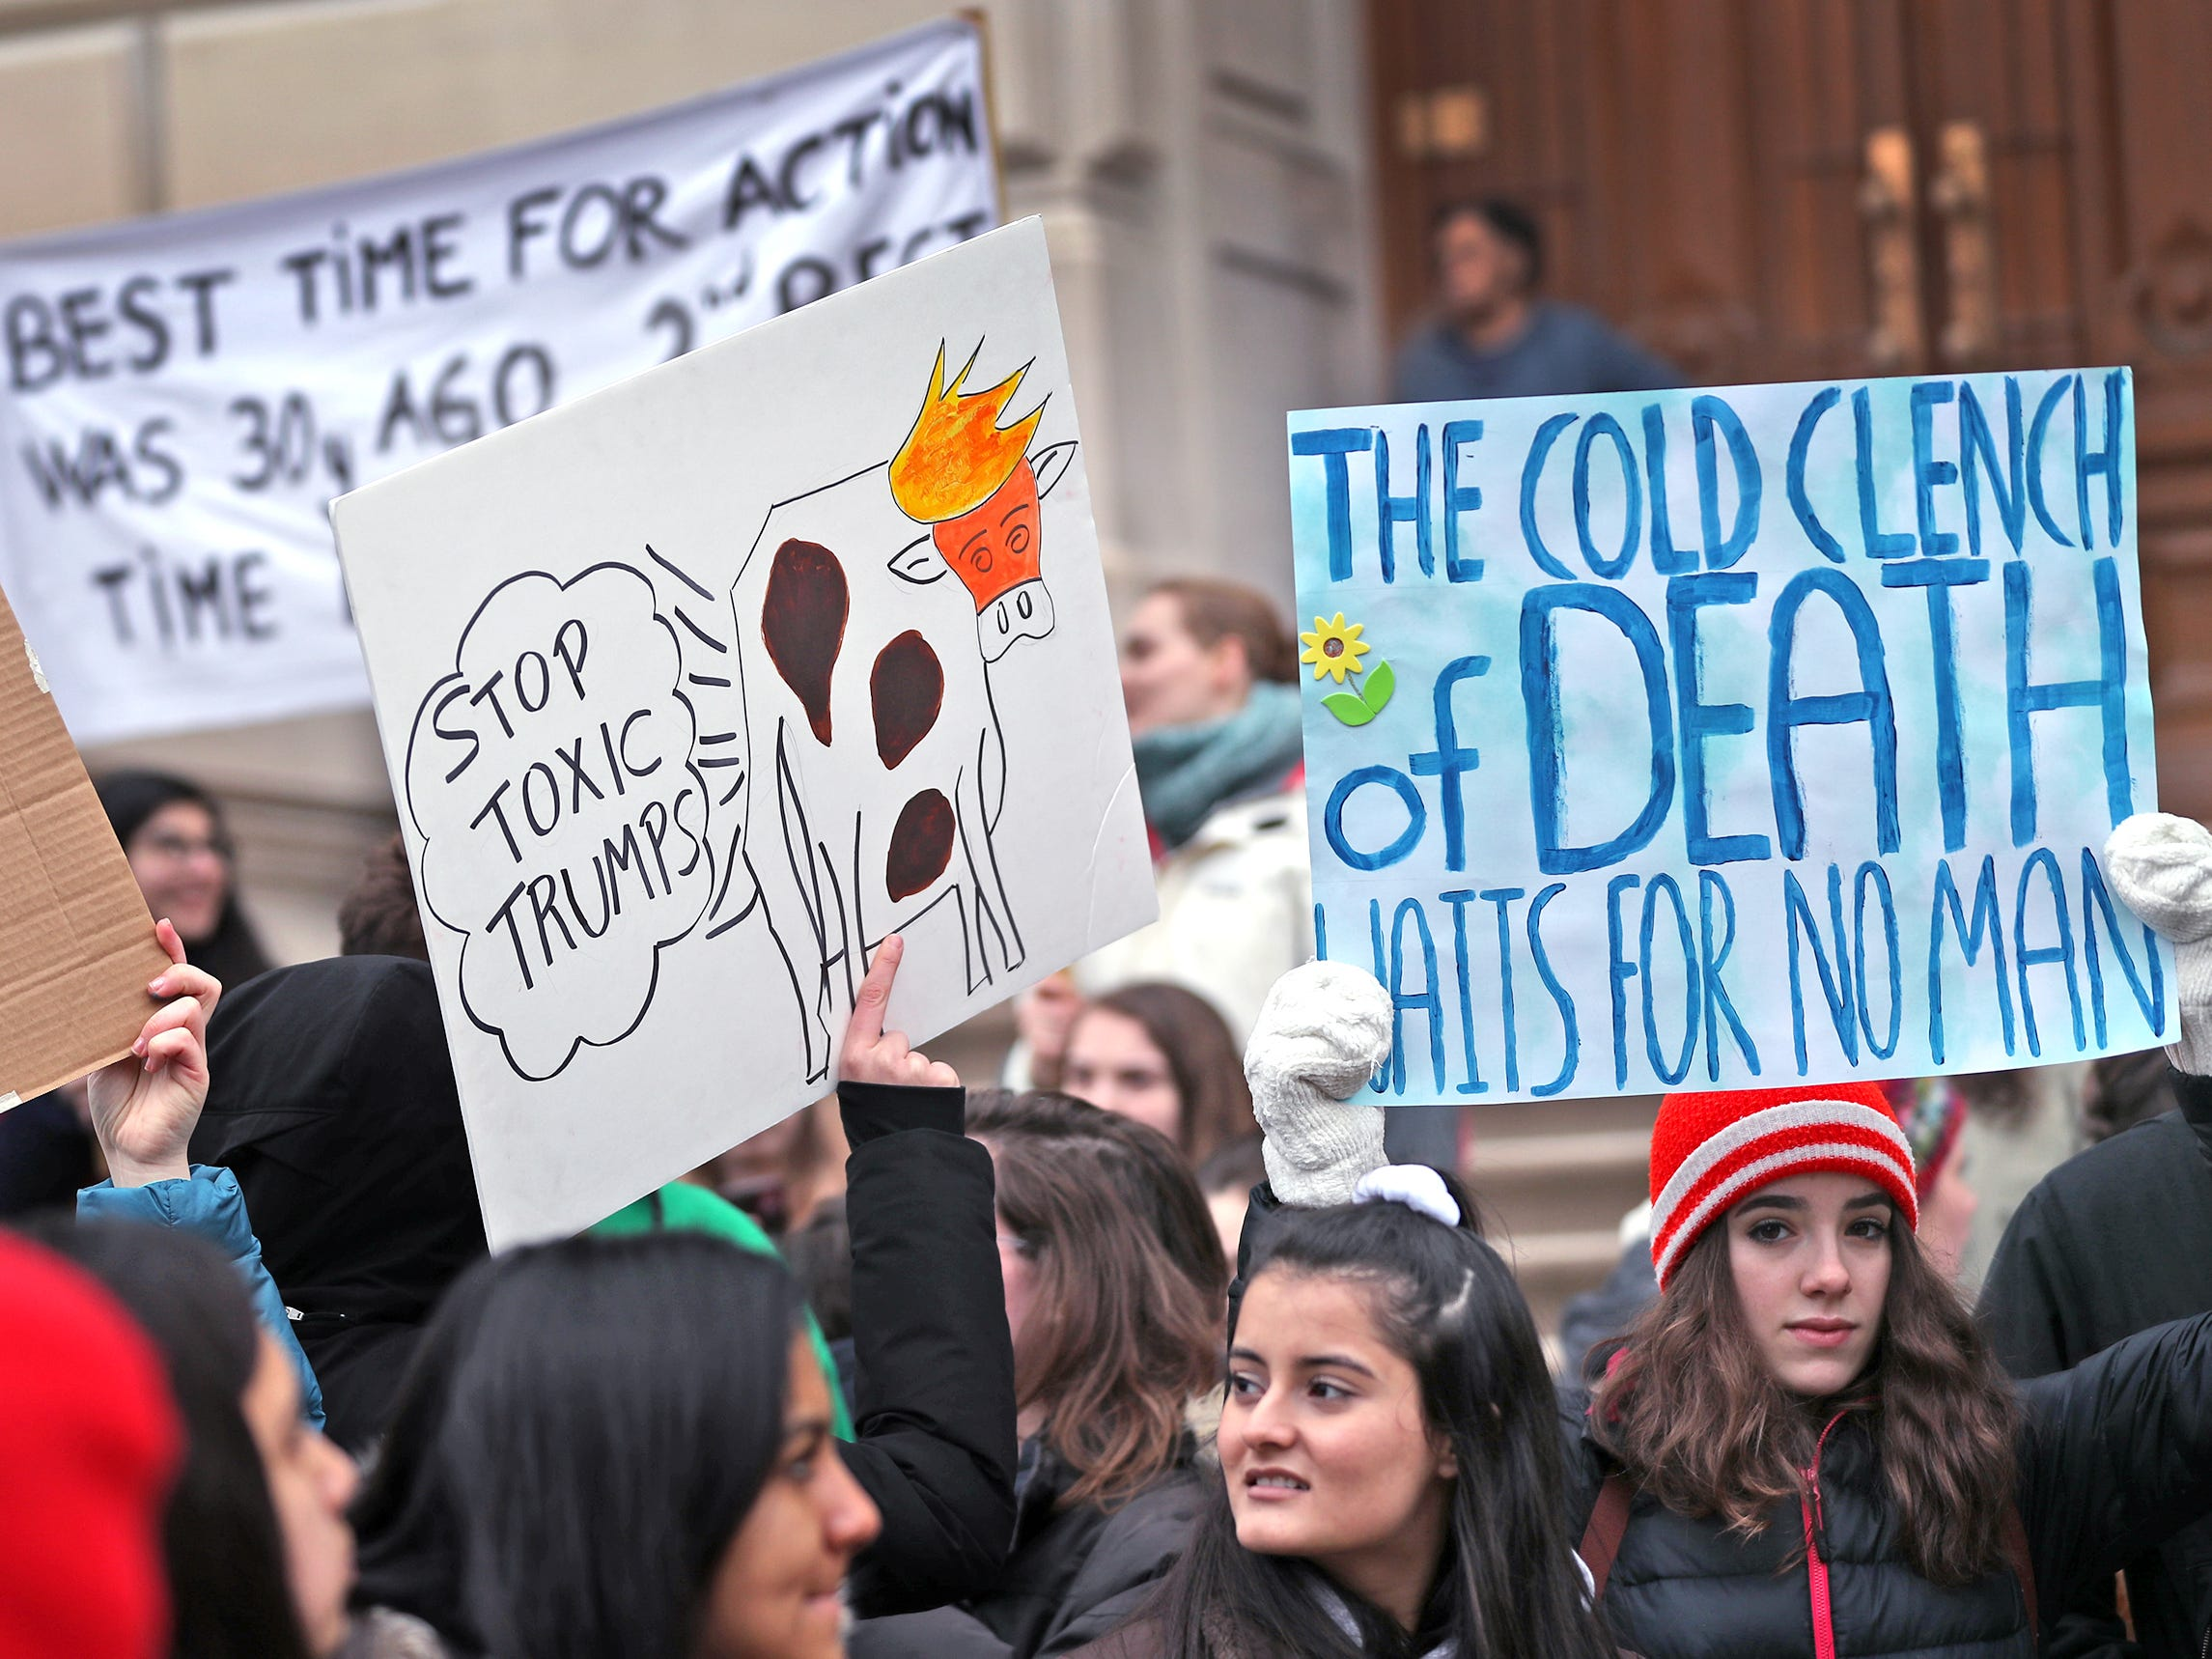 Students come together with a variety of signs during the Indiana part of the international Climate Strike, Friday, March 15, 2019, held outside the Indiana Statehouse.  Some of the signs referenced President Trump.  Following in the footsteps of 16-year-old Swedish trailblazer, Greta Thunberg, students around the world are skipping school to protest government inaction on climate change.  The Indiana protest brought over 250 participants.